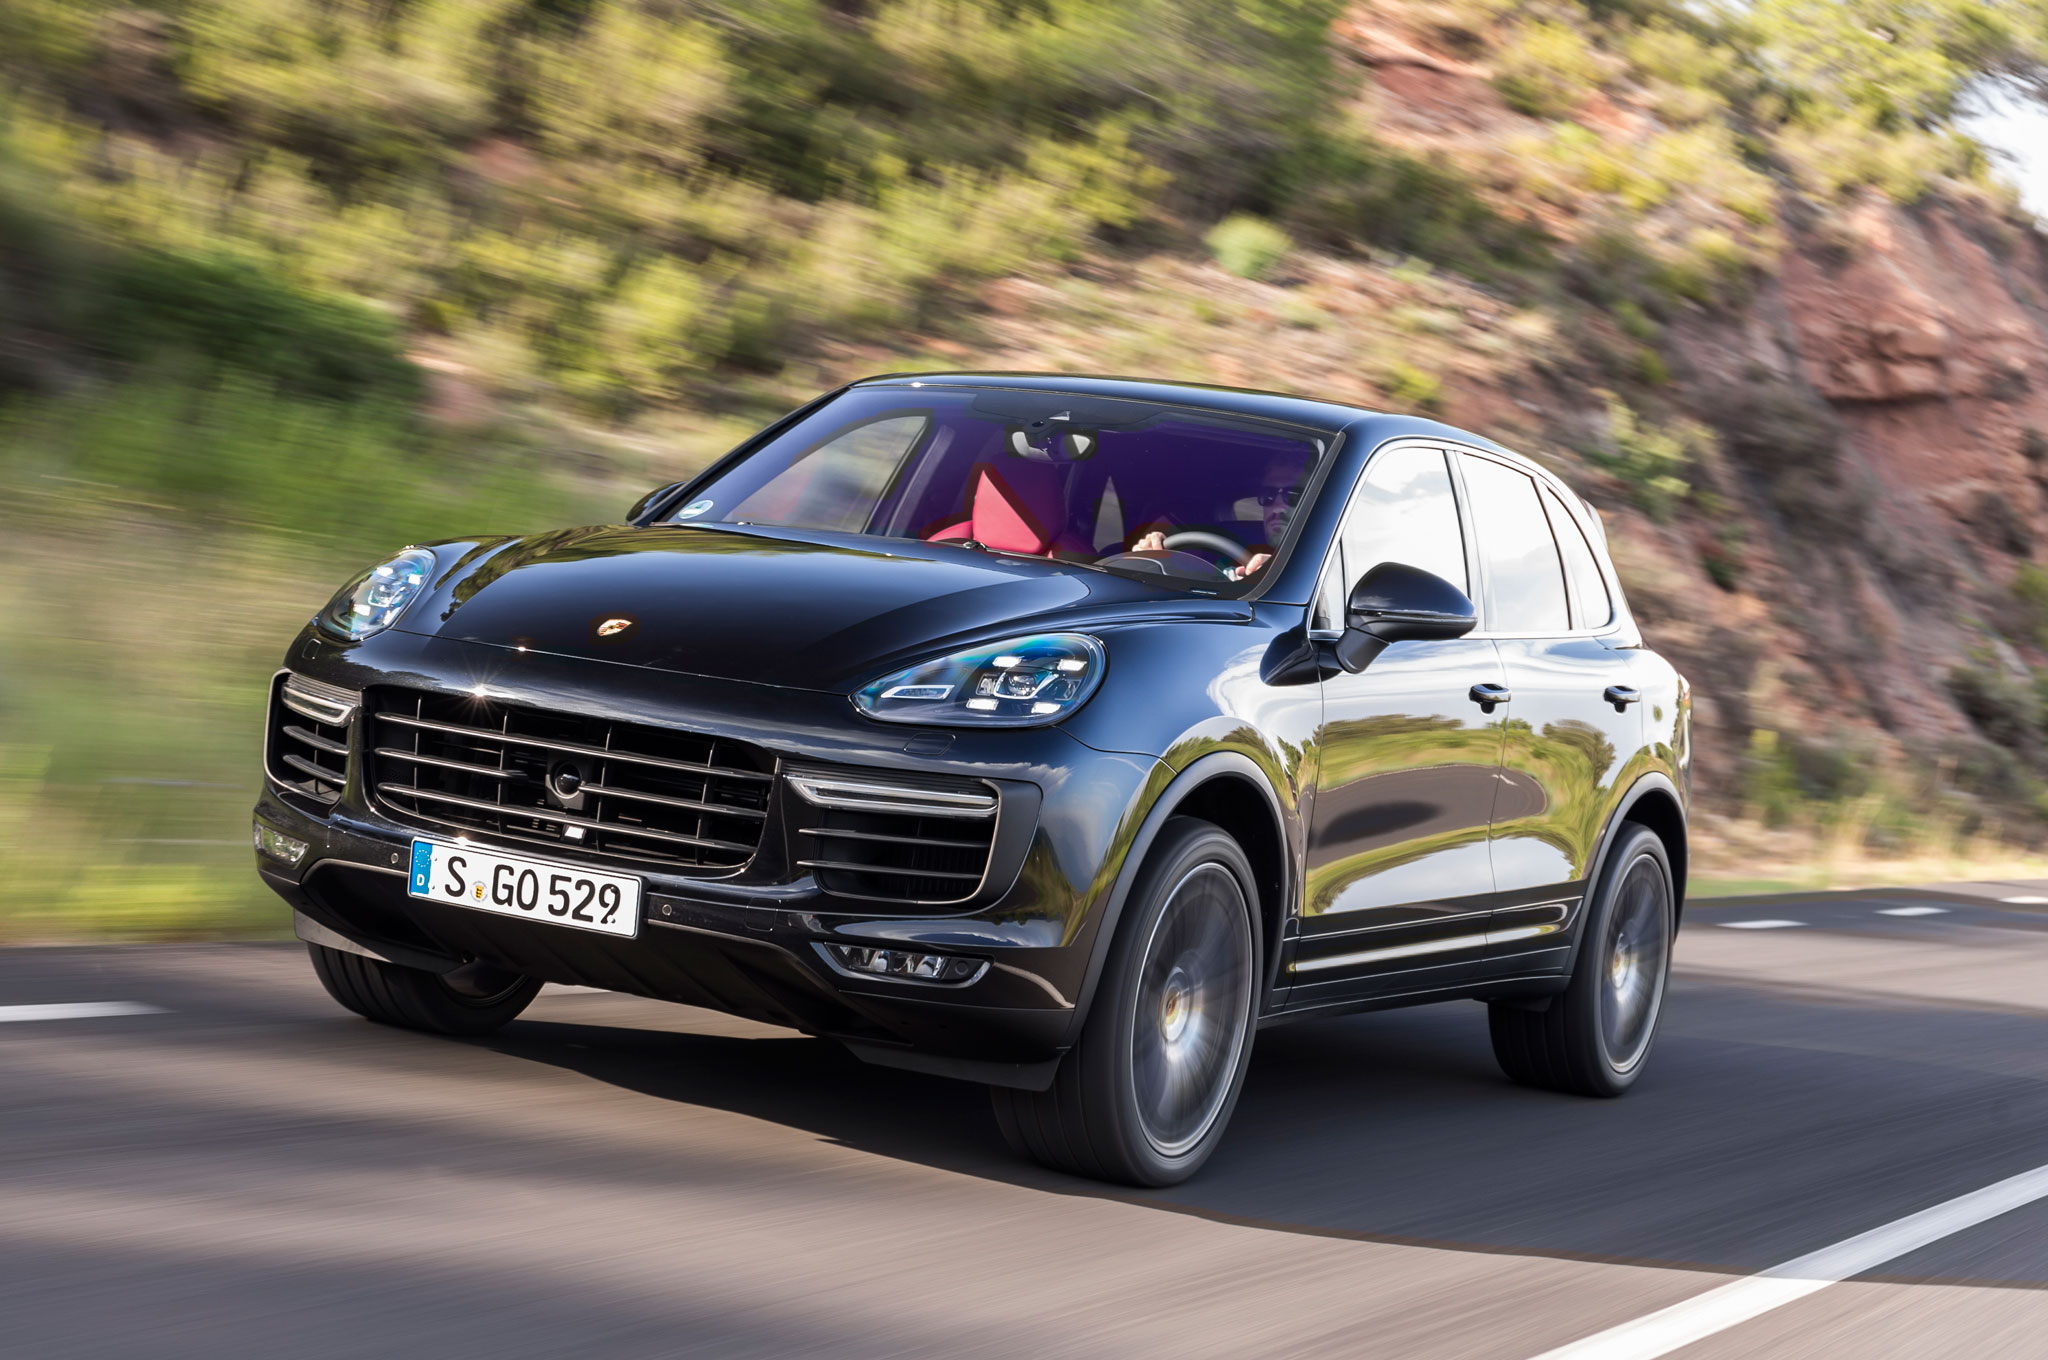 Vwvortex com all new third gen 2019 porsche cayenne unveiled visibly and tangibly improved and perfected in all respects